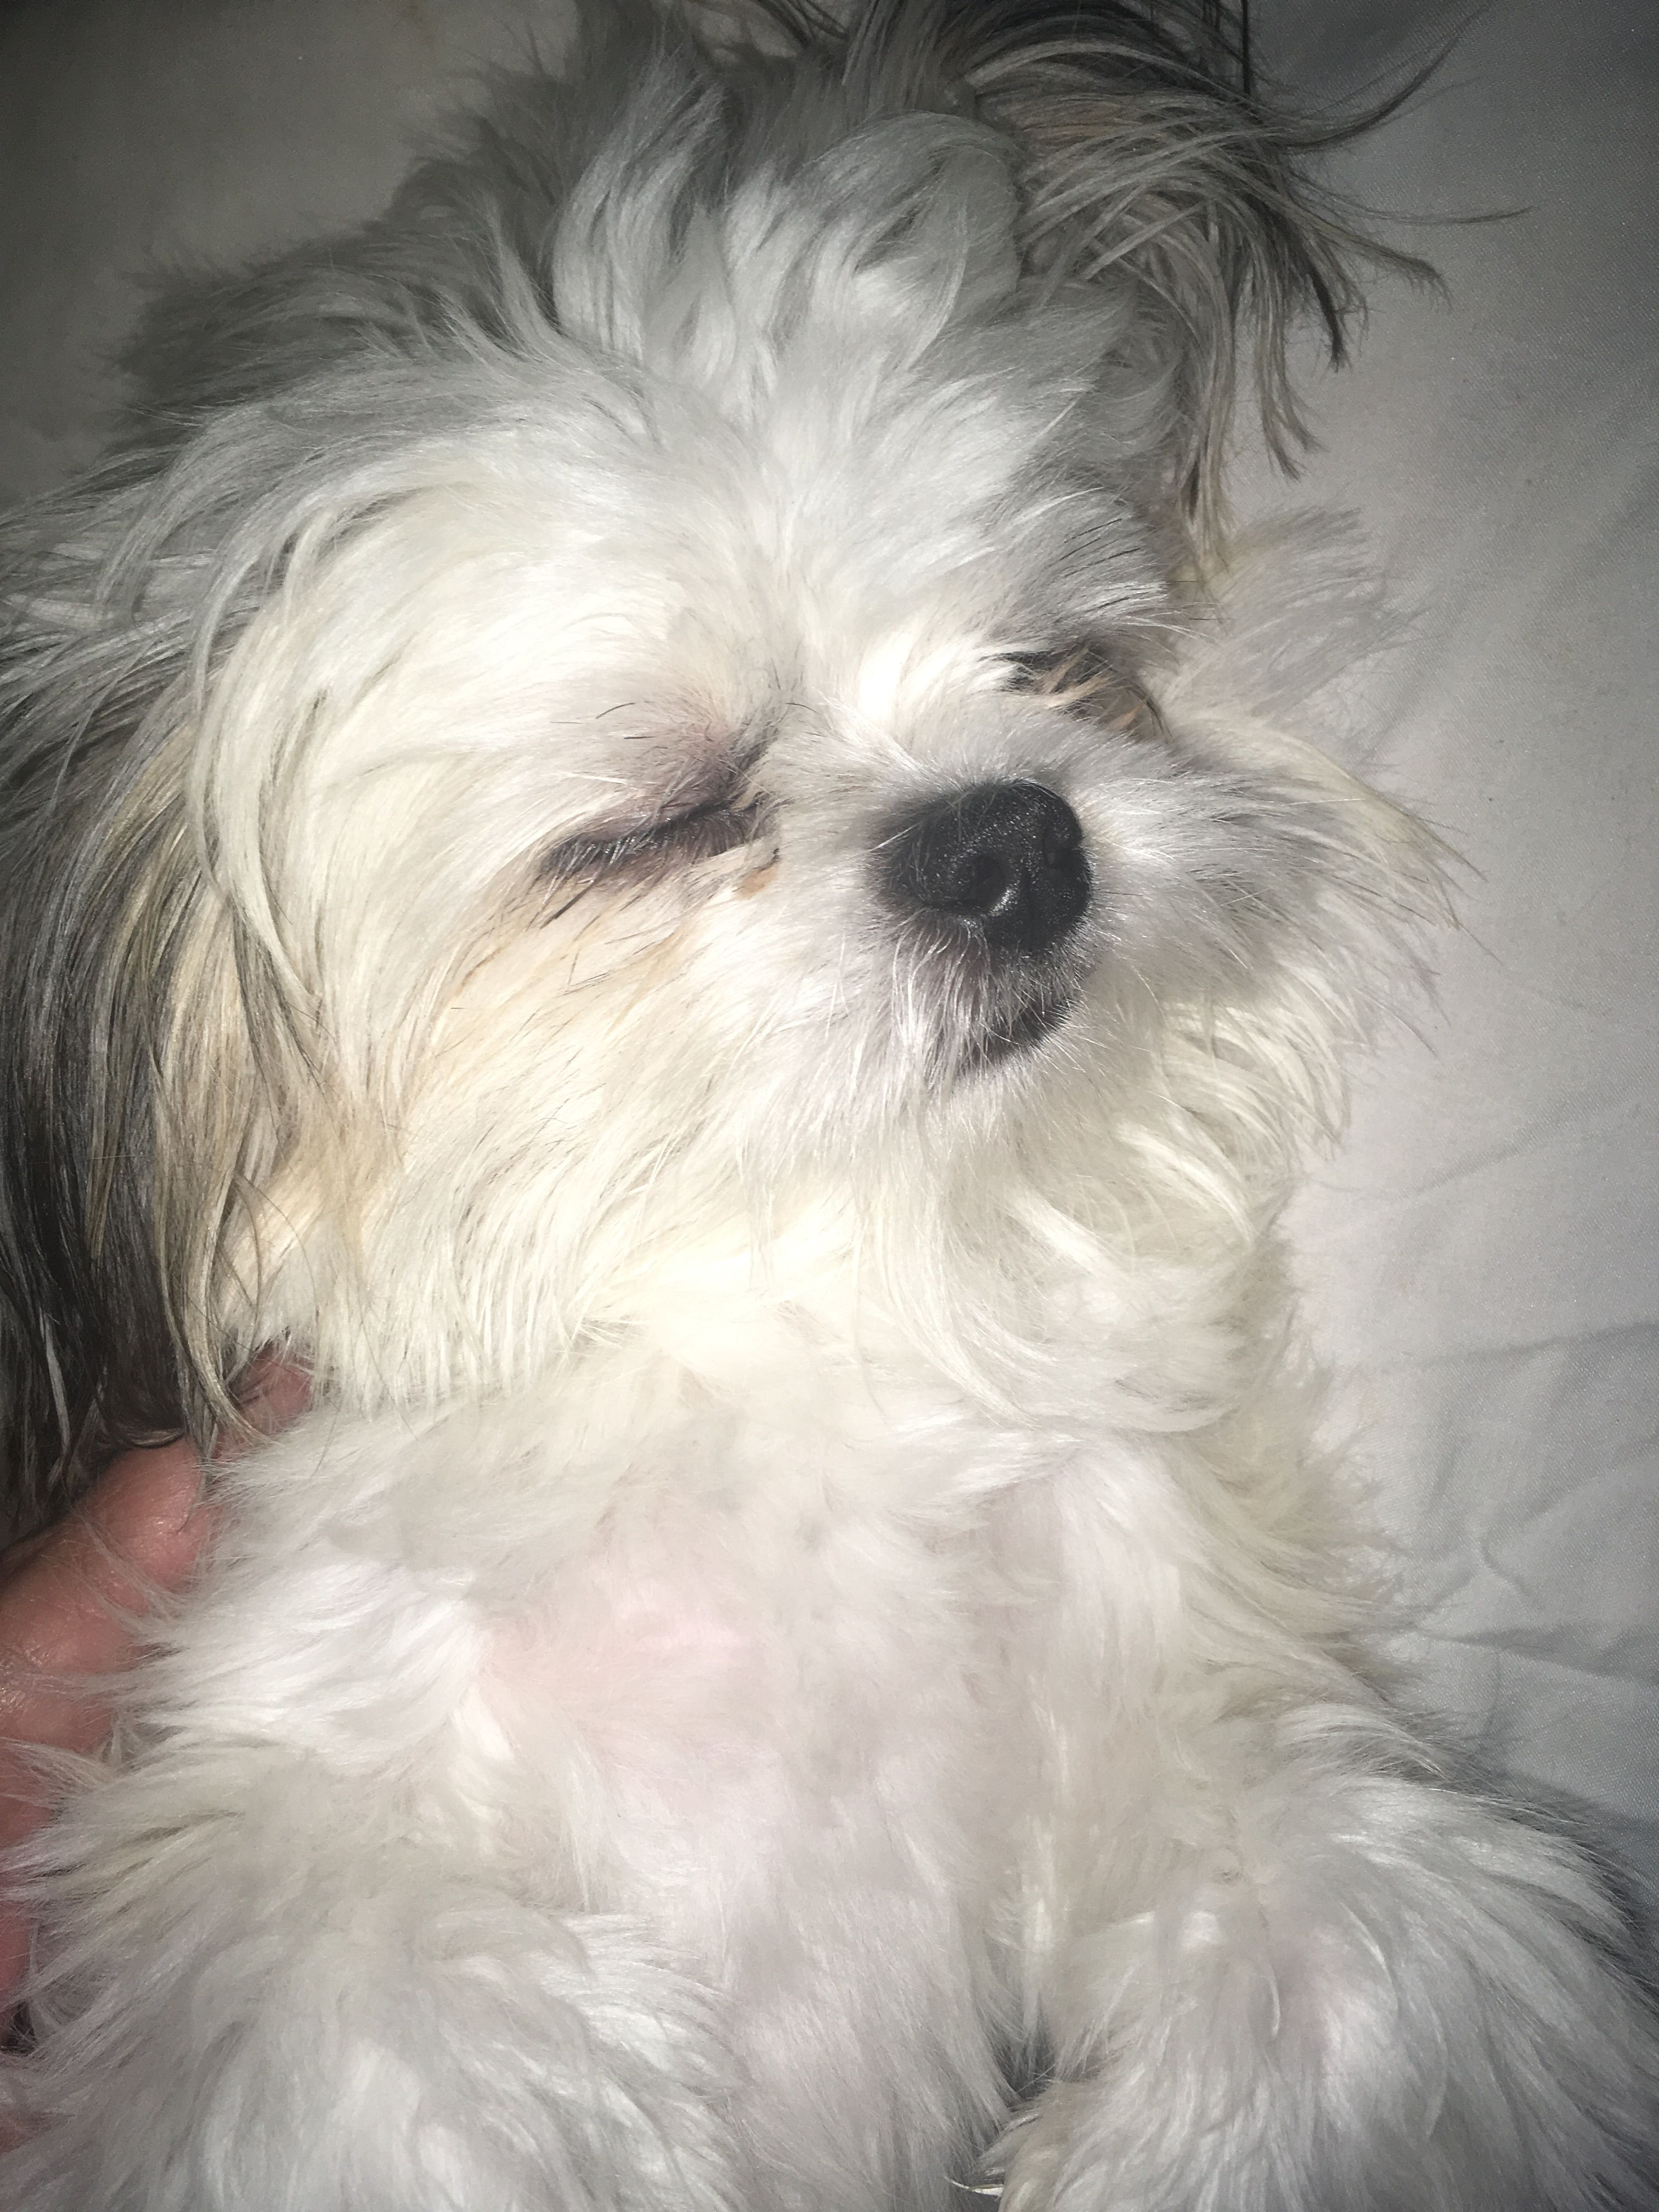 Pin By Chinese Imperial Shih Tzu Bamb On Shih Tzu Cutest Dog Shih Tzu Cute Dogs Shih Tzu Puppy